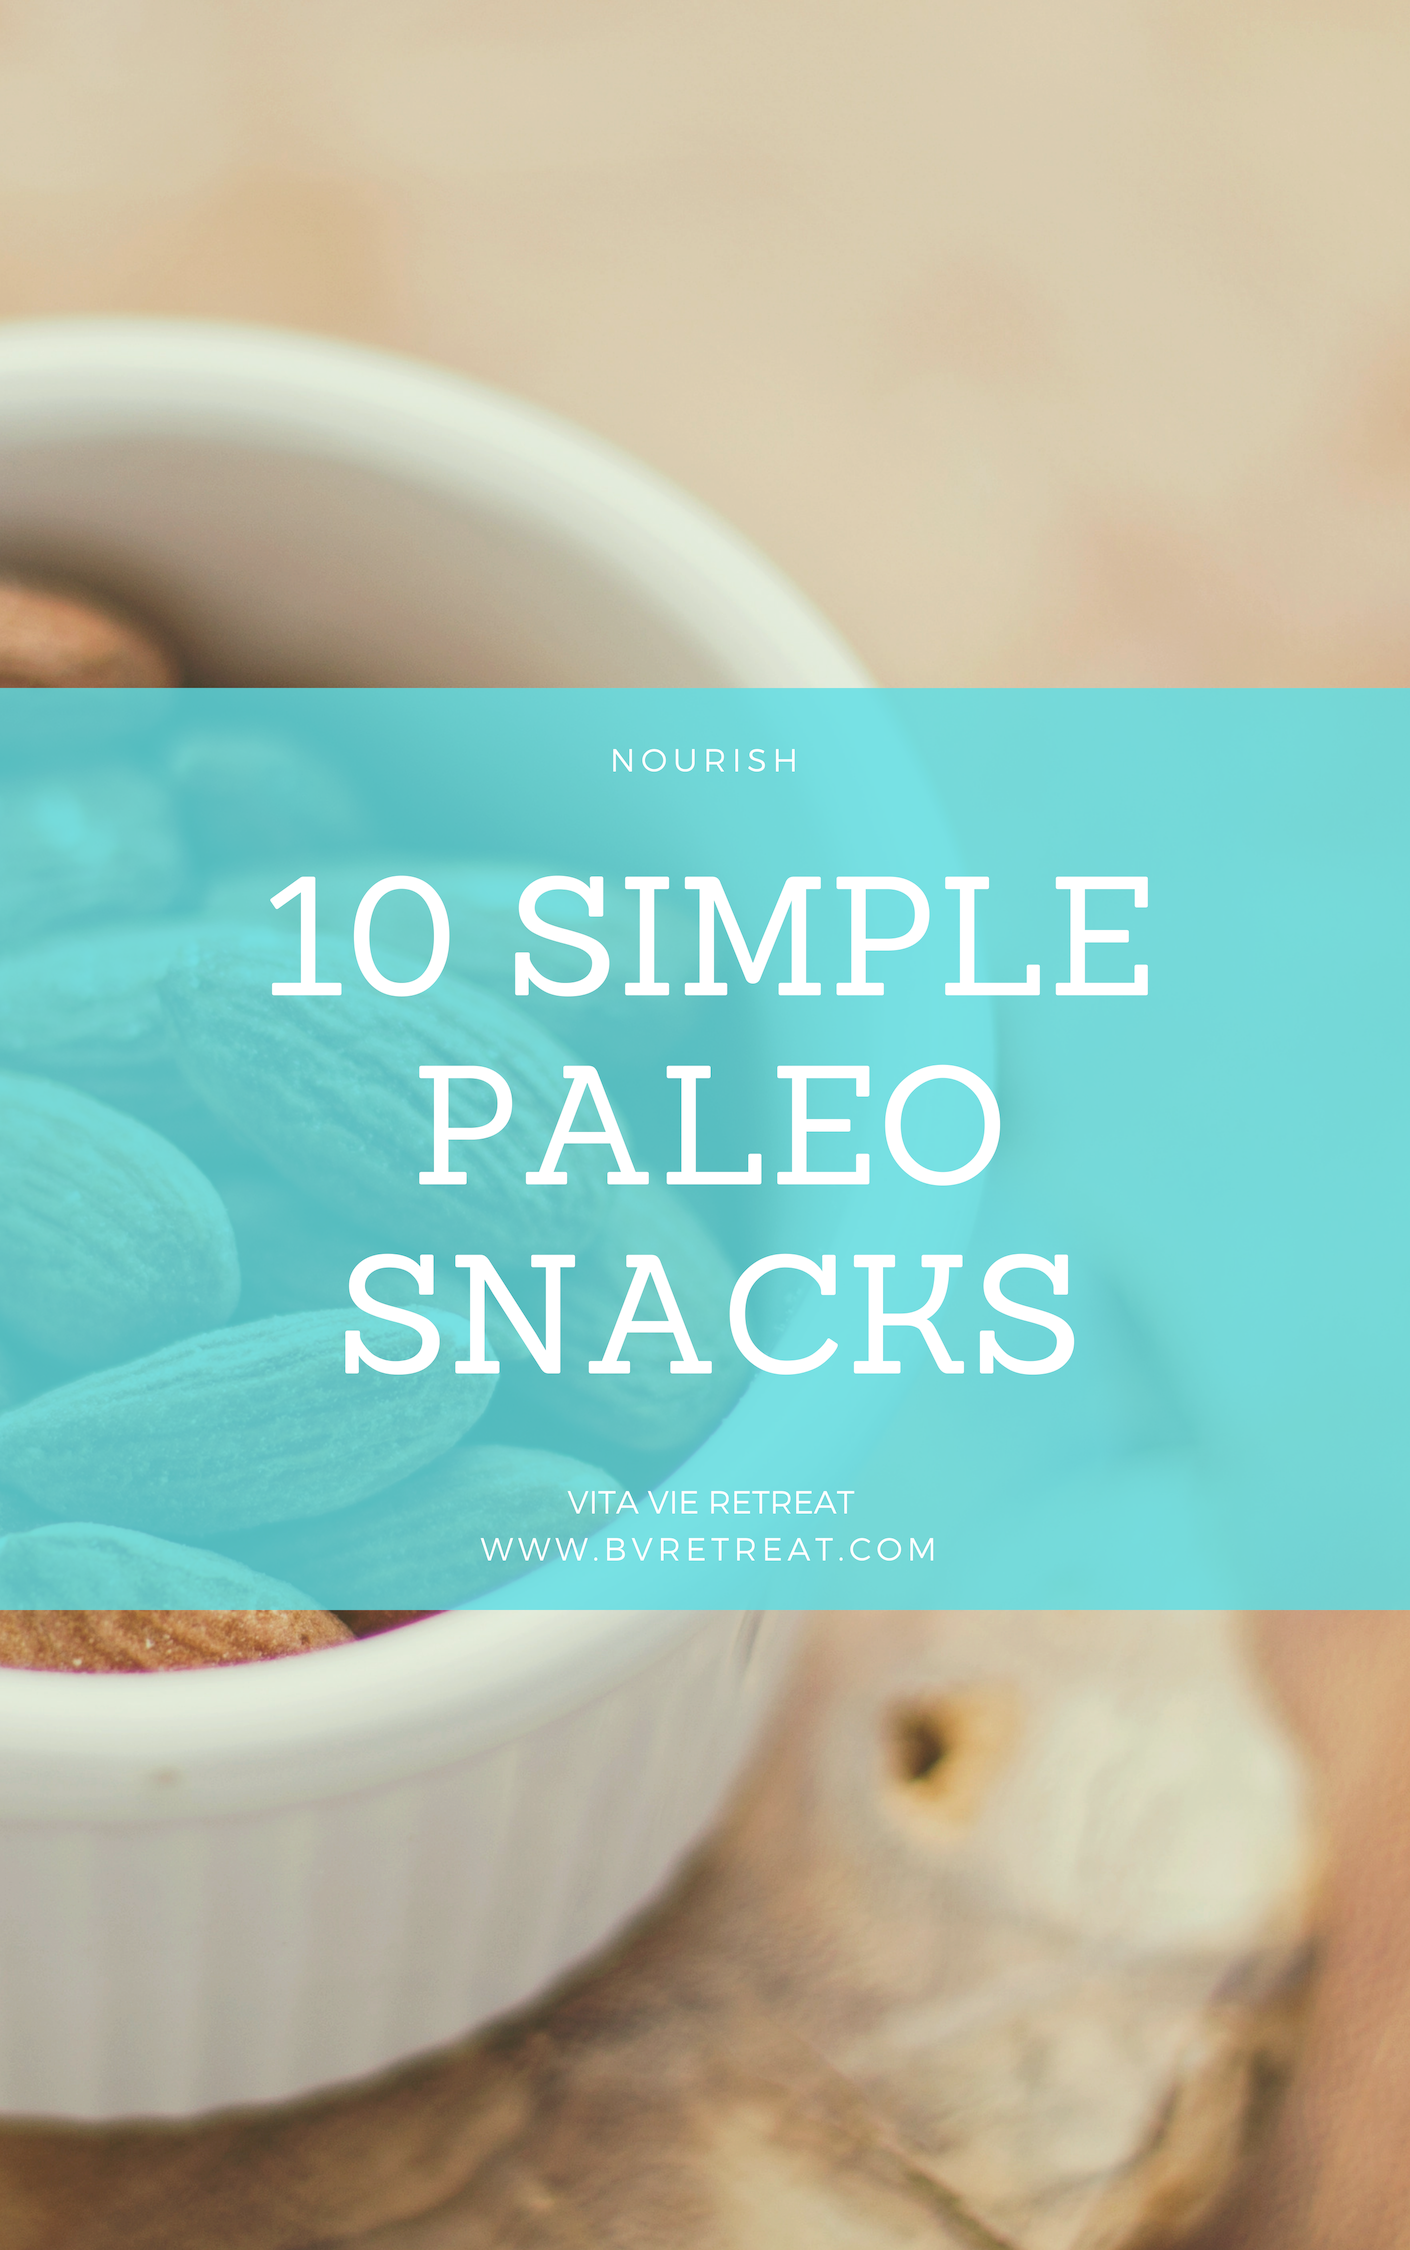 Almonds are a simple paleo snack.